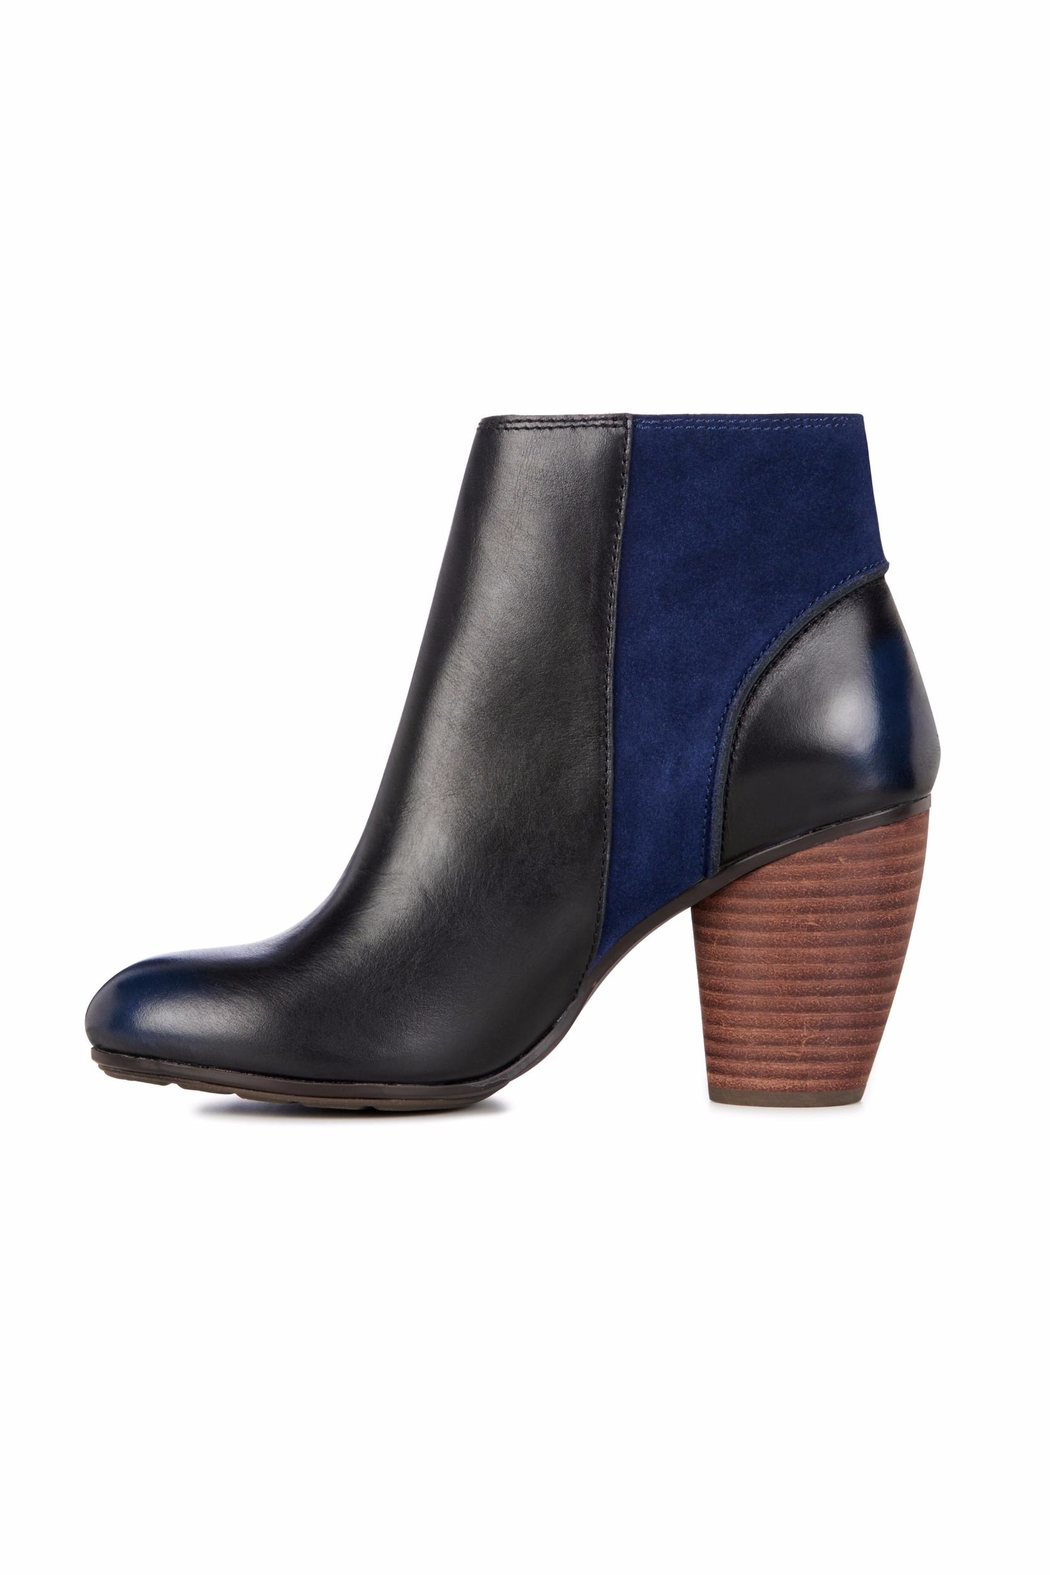 Emu Australia Blumont Heeled Booties - Side Cropped Image